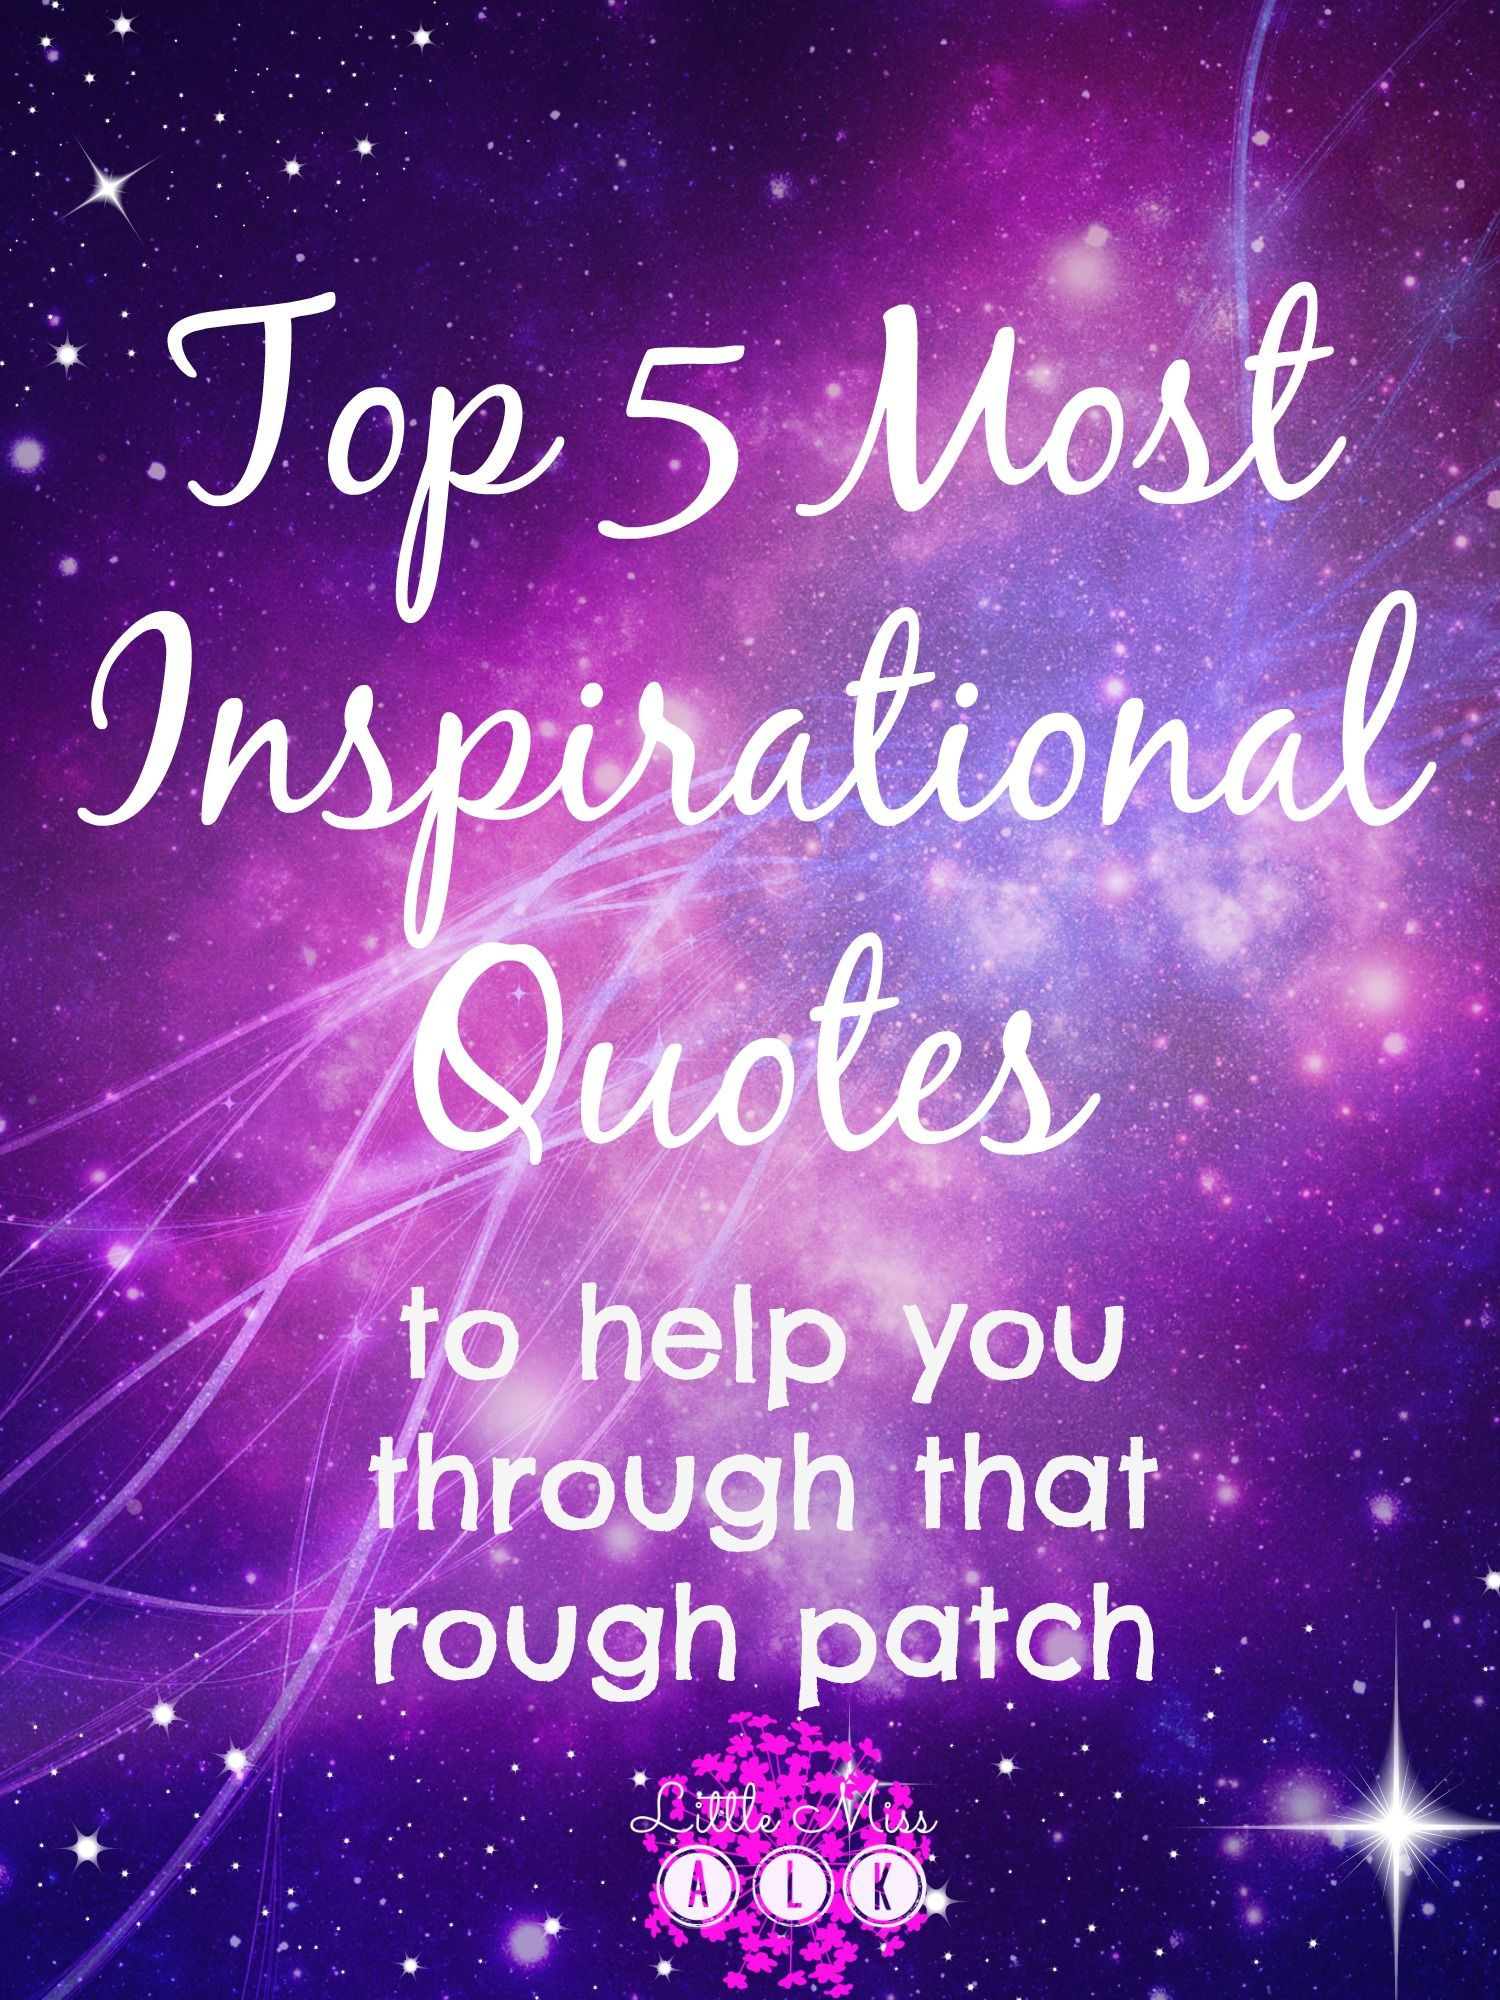 Top 5 Most Inspirational Quotes | LittleMissALK #motivational #quotes #inspiration